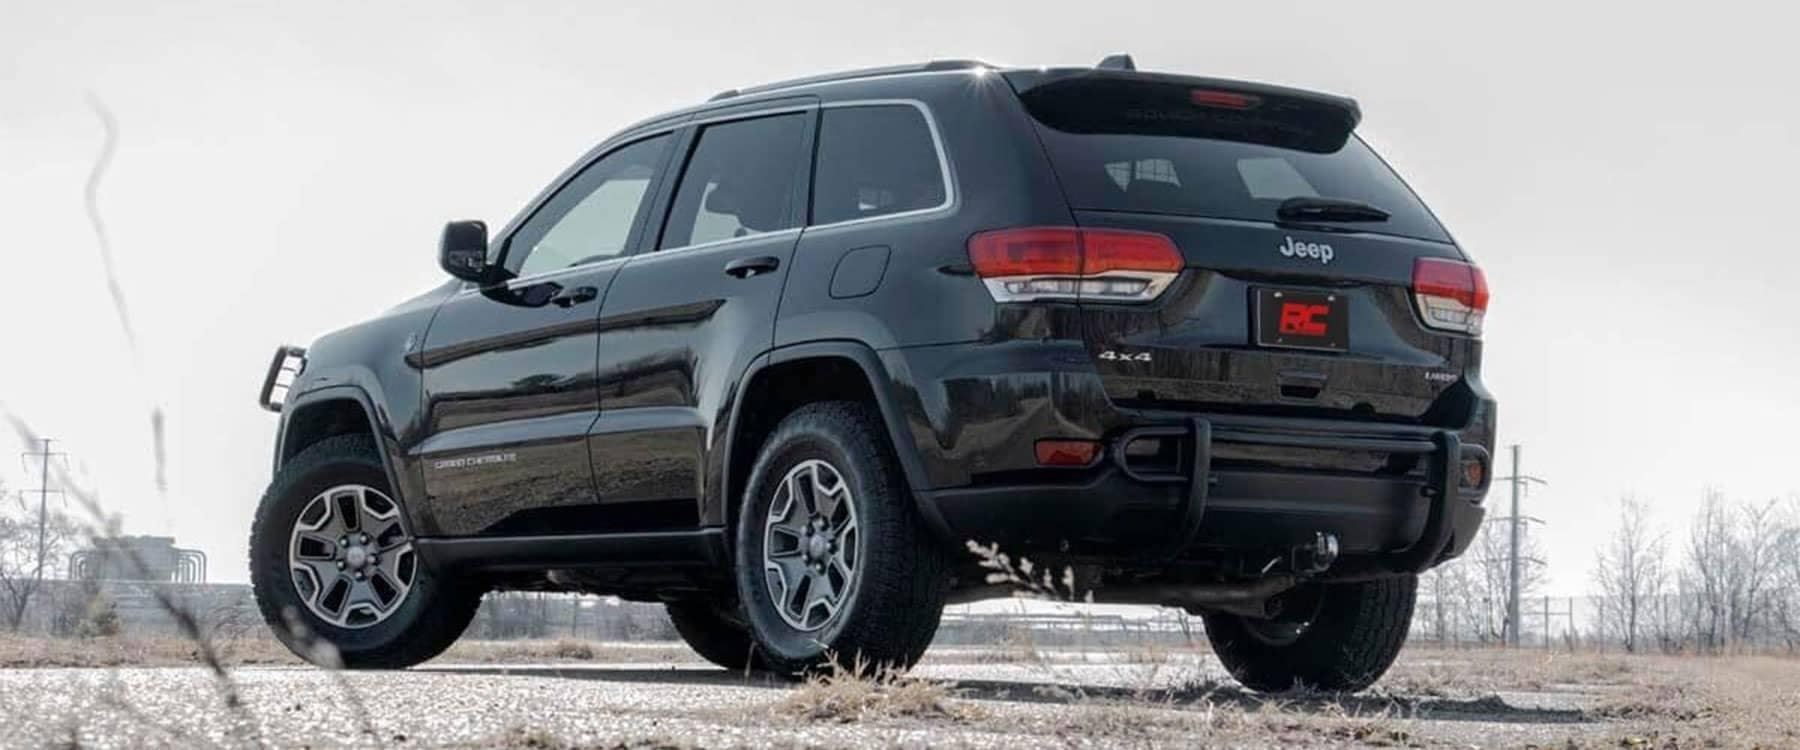 Gurnee CDJR 2018 Jeep Grand Cherokee 2 inch leveling kit Rough Country